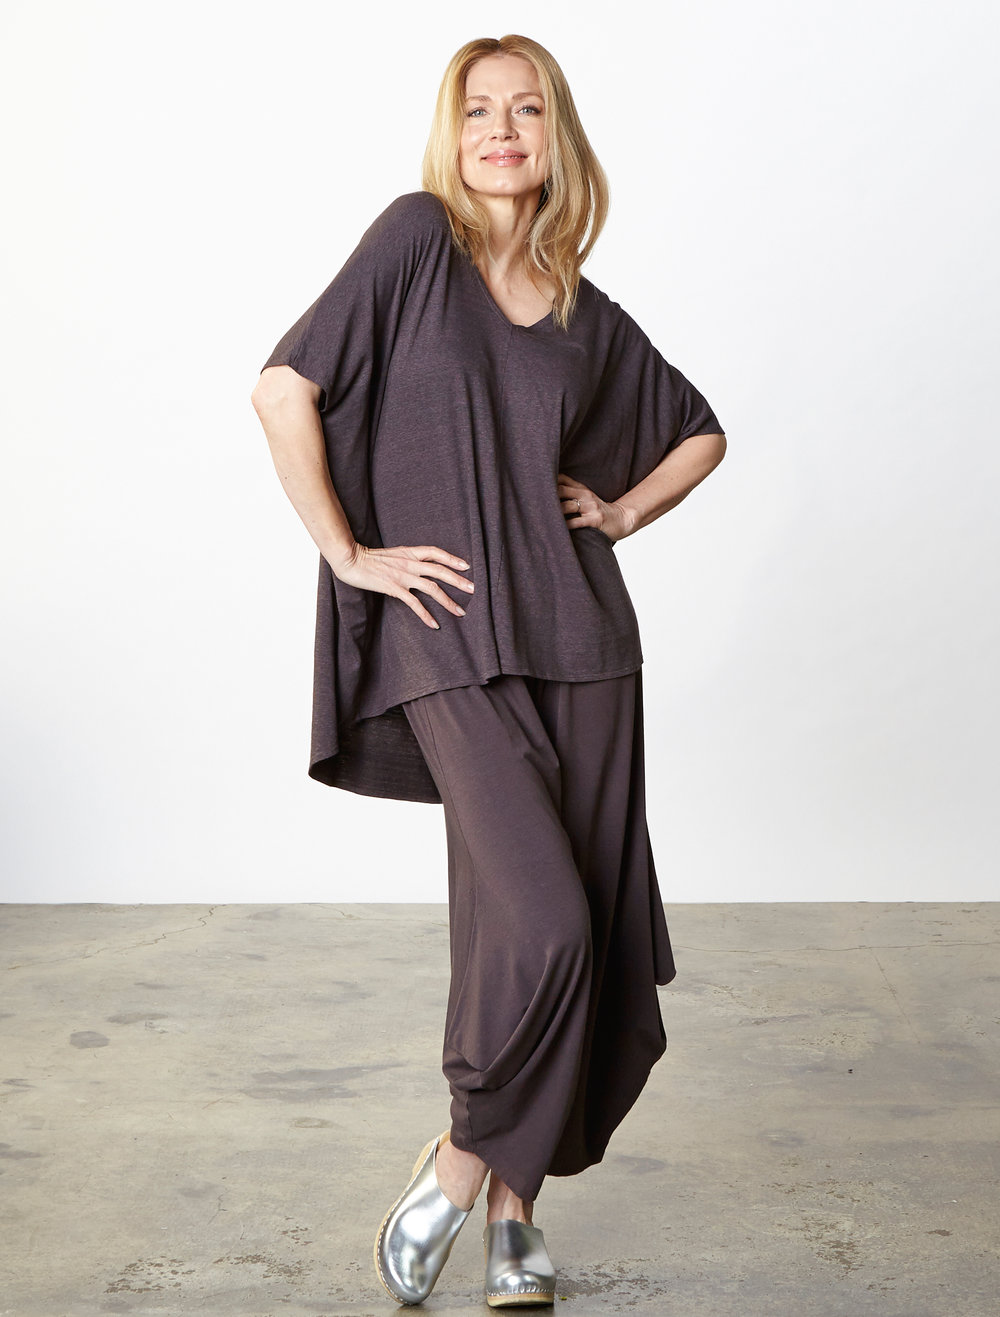 Justin Tunic in Earl Striped French Terry, Hamish Pant in Earl Organic Bamboo Cotton